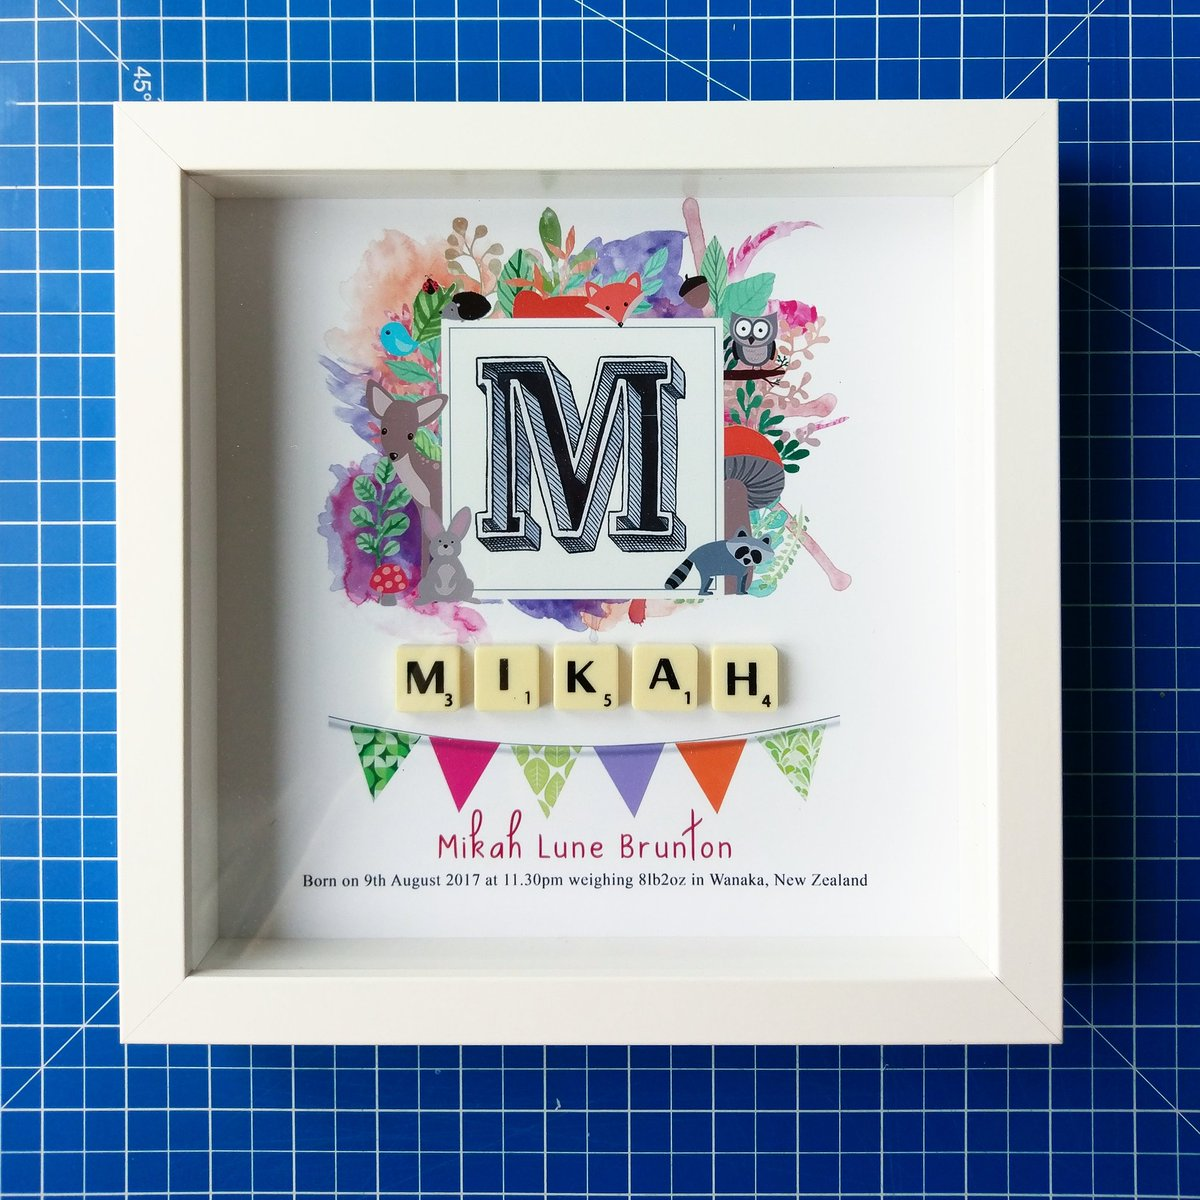 Baby girl Scrabble frame flown all the way to New Zealand  #design #graphicdesign #illustration #print #wallart  #bespoke #personalised<br>http://pic.twitter.com/RhHq8XBVrT